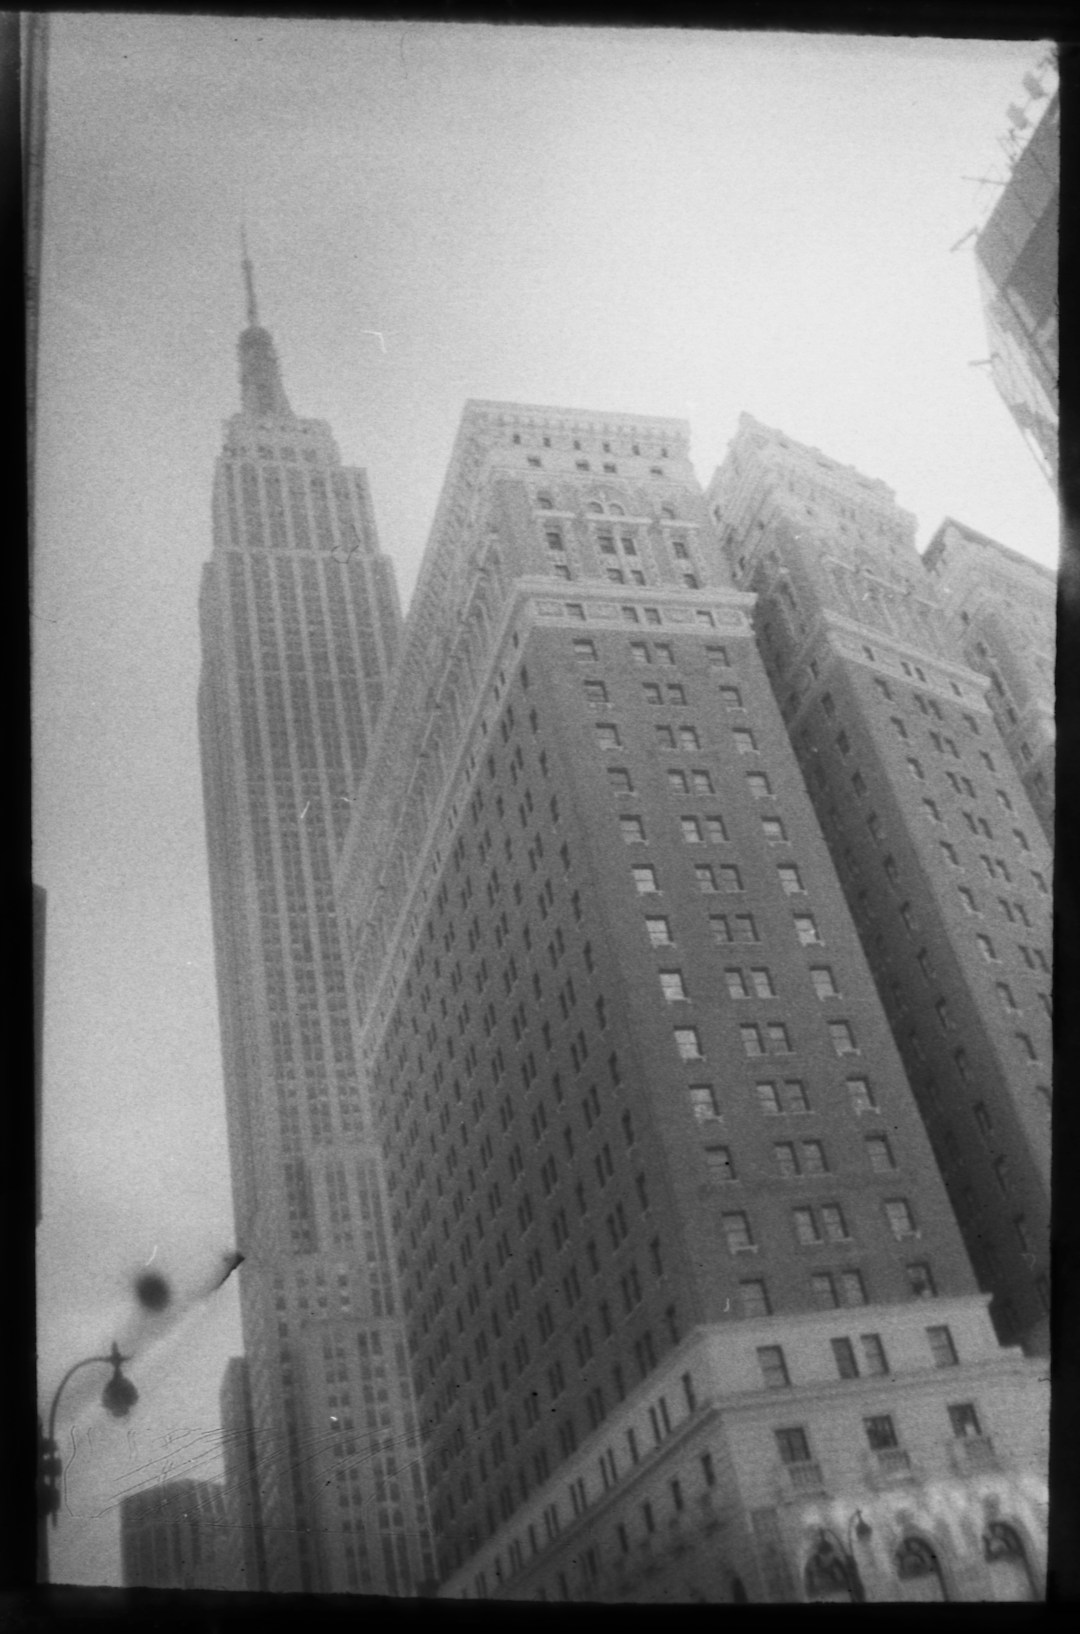 Photo taken in New York with a Jaeger-LeCoultre Compass camera ∏Jean-Philippe Hussenet_09.jpg